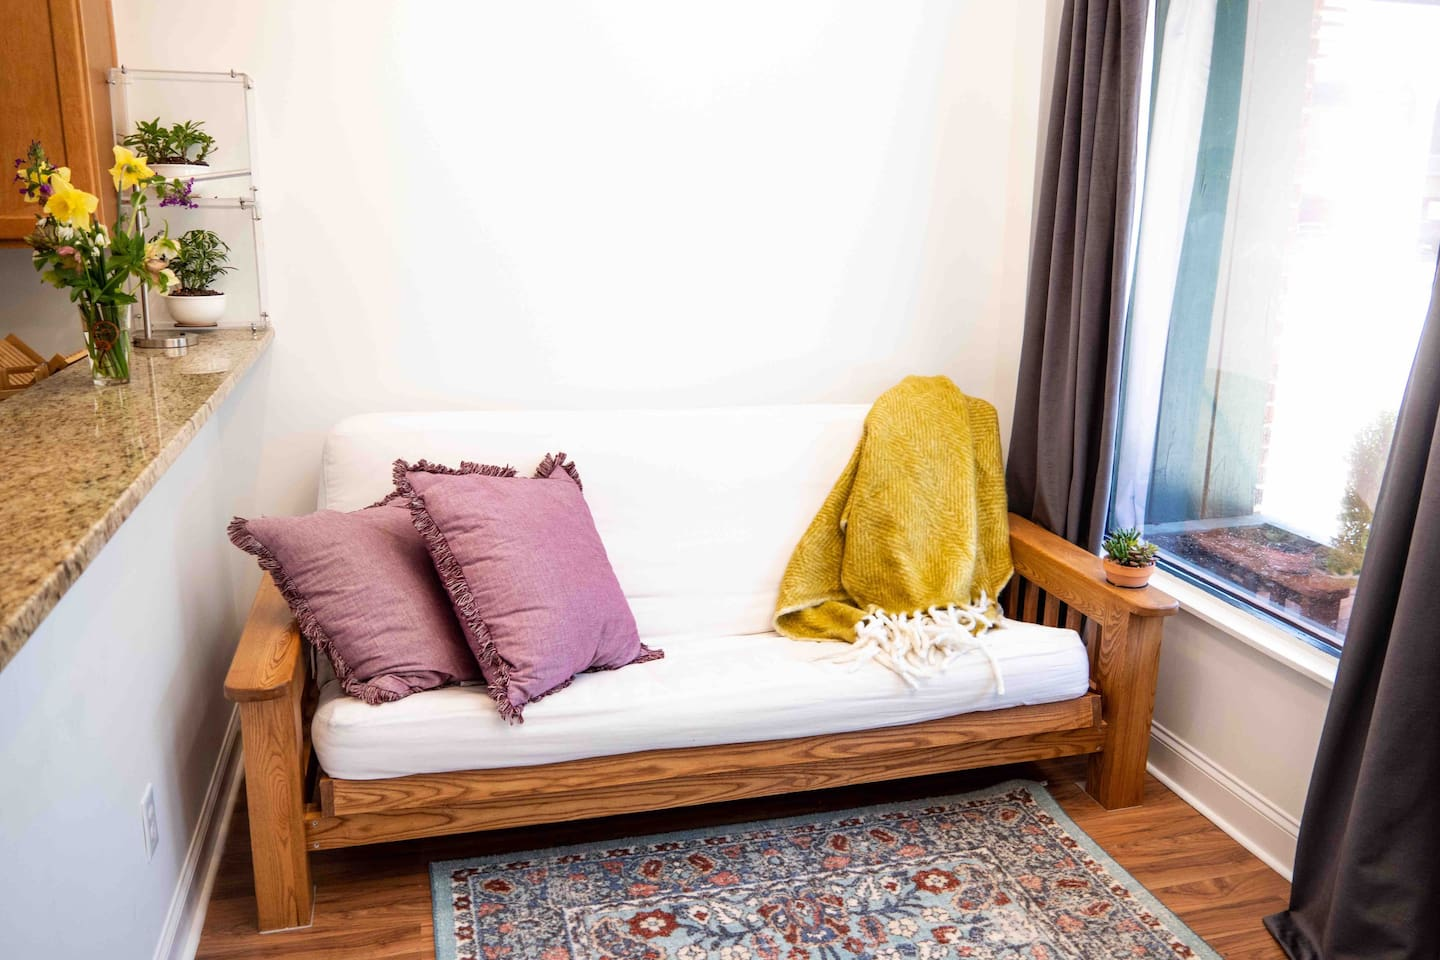 """Gorgeous, stress reducing, hidden gem in the center of the CITY..  Queen bed in private bedroom, Full futon in common space.  Come stay awhile! Have some wine & """"un-wind"""".  Great restaurants, theatre, Baseball games!  Have Fun!"""